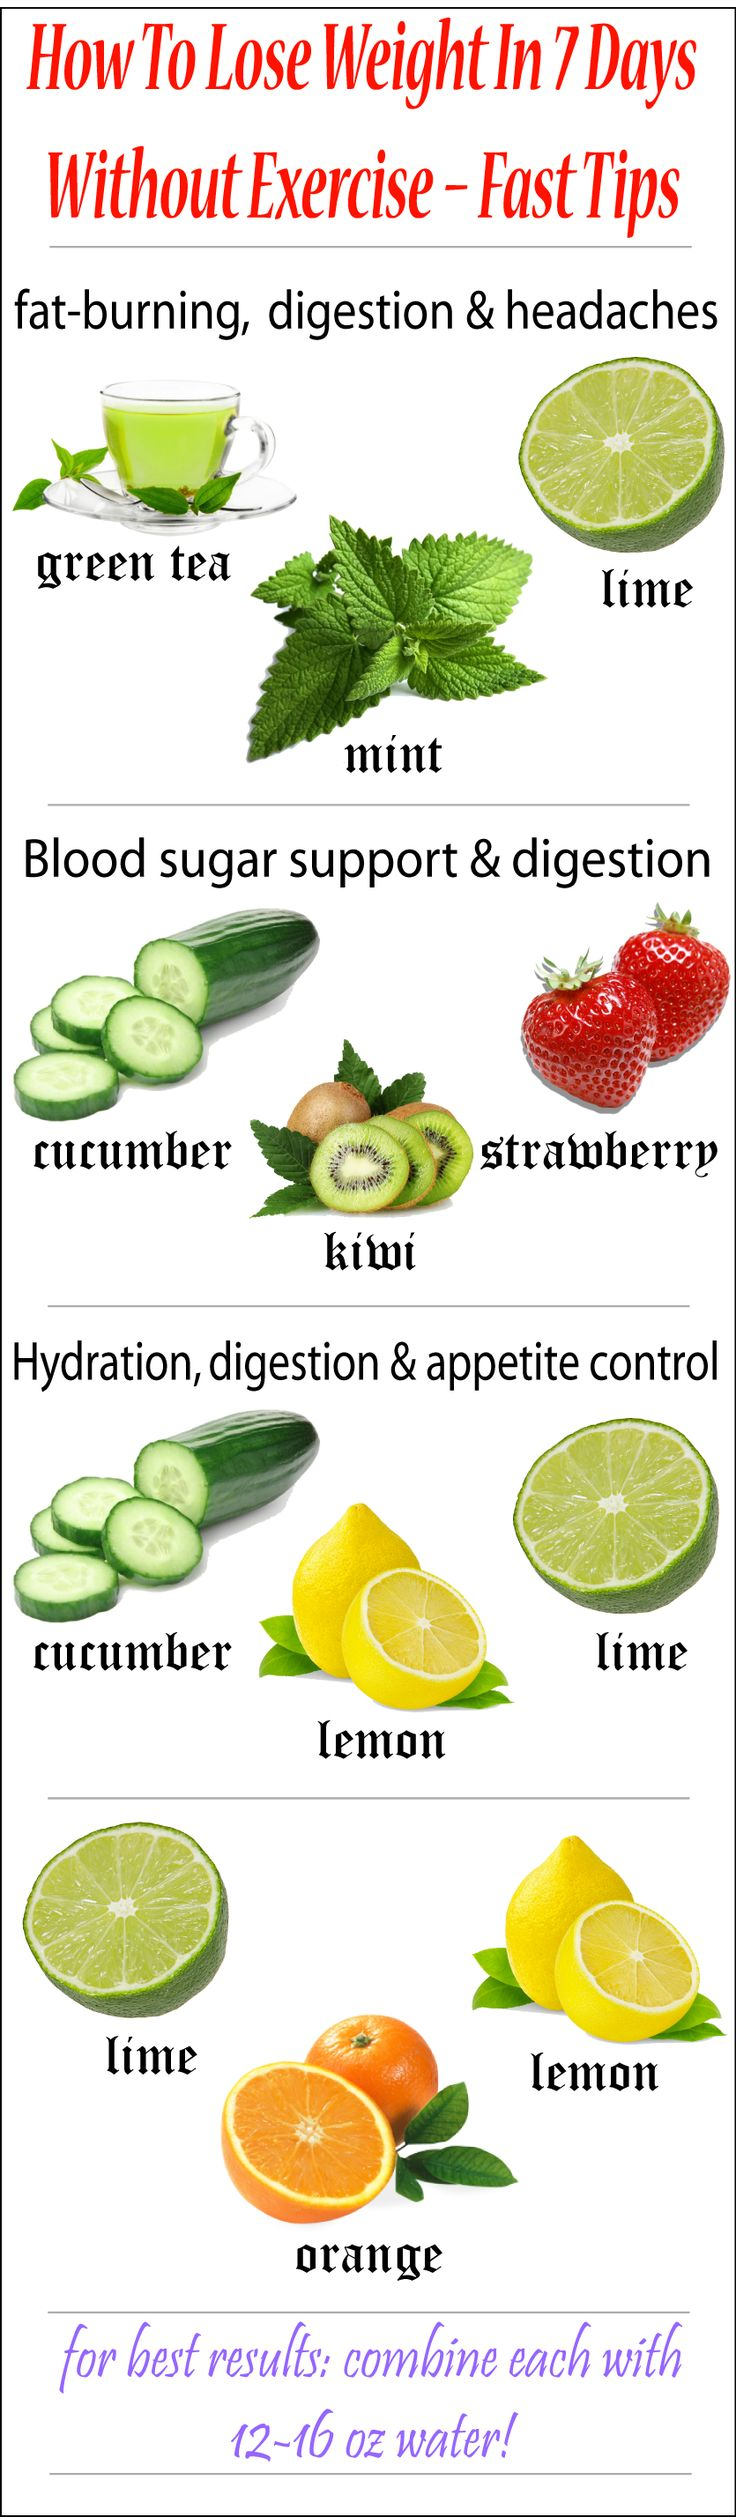 How to use water with lemon for weight loss ehow - Best 25 Jump Start Diet Ideas On Pinterest Clean Eating Meal Plan Pcos Diet Plan And Get Lean Meal Plan